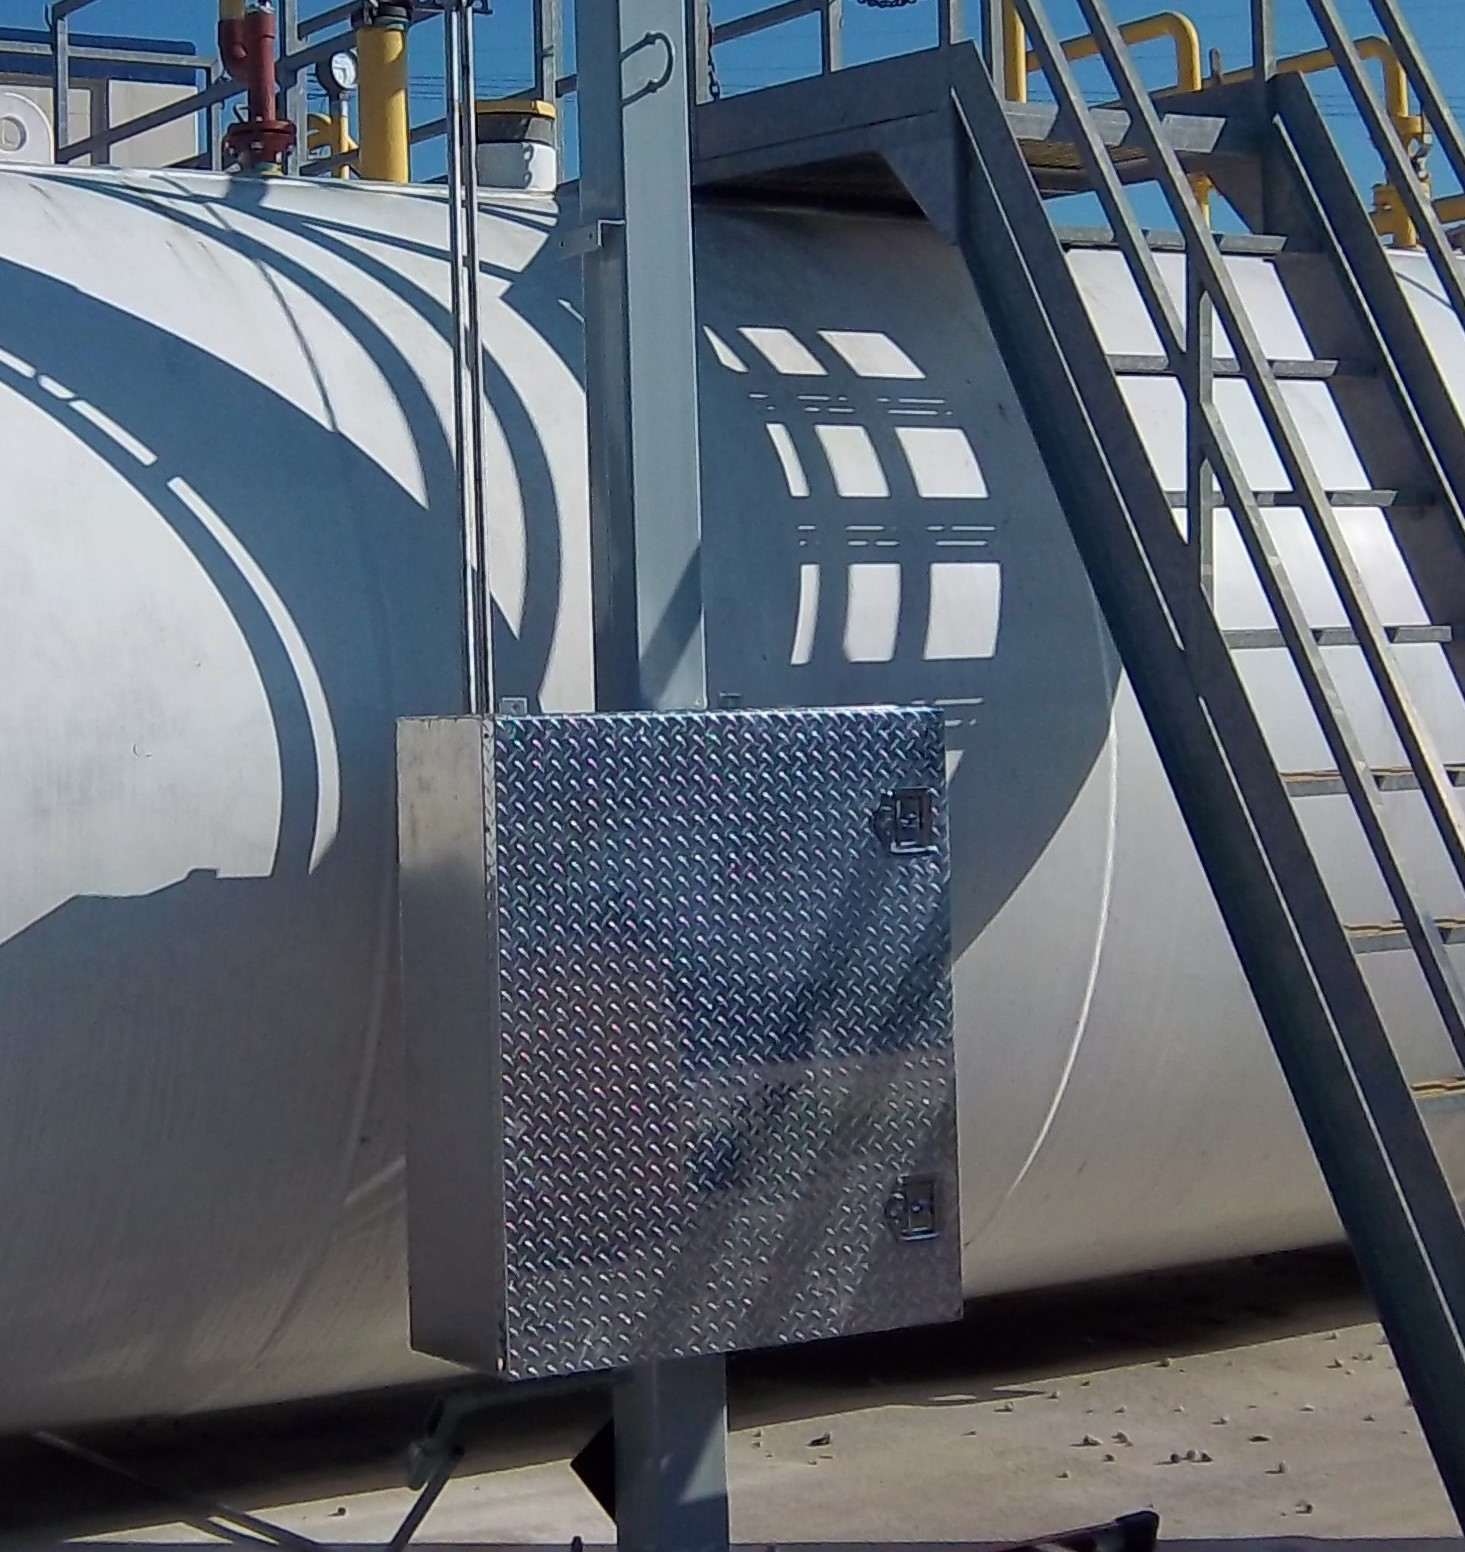 Automatic-fuel-polishing-system installed on two 8,000 gallon tanks